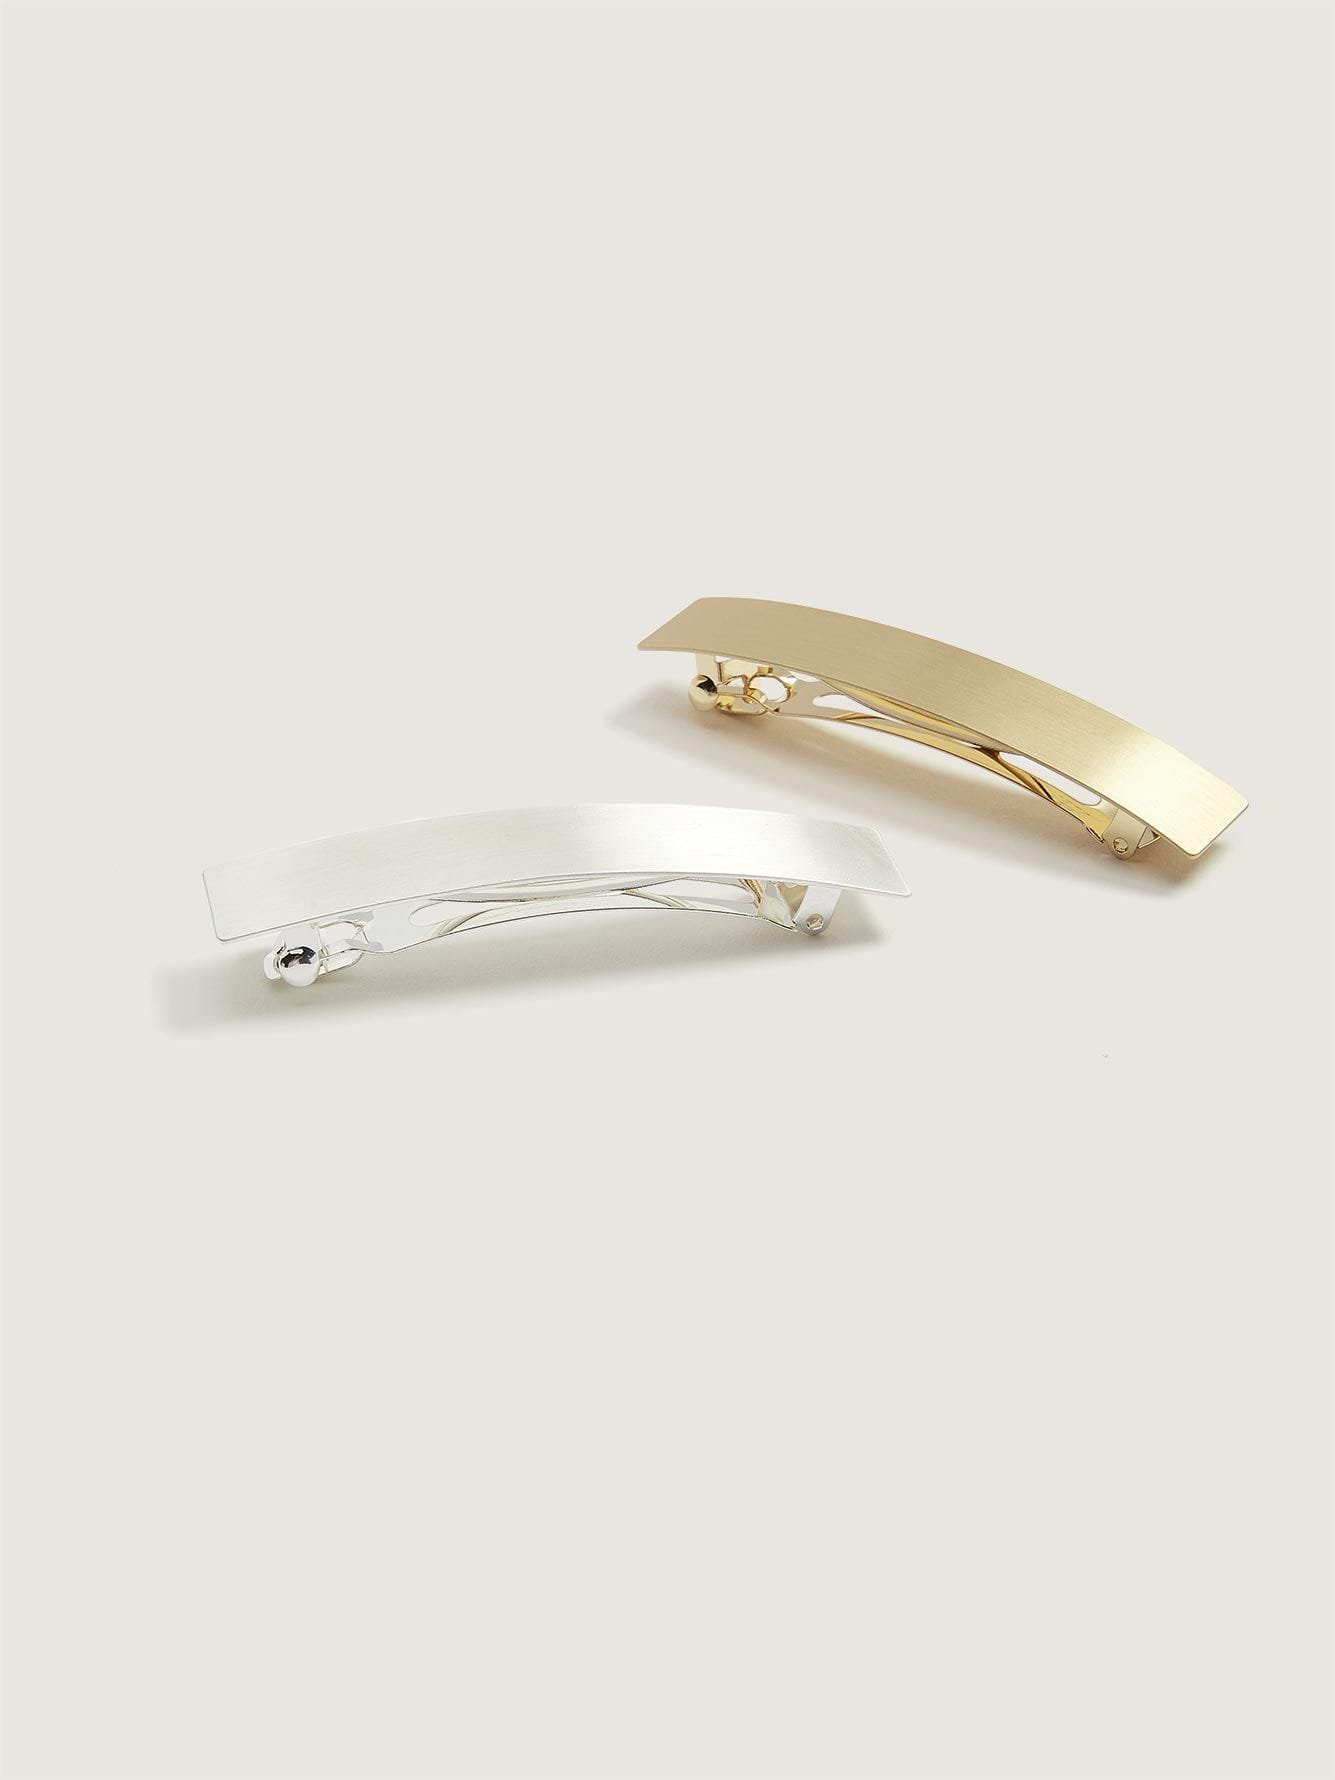 2 Brushed Metal Hair Clips